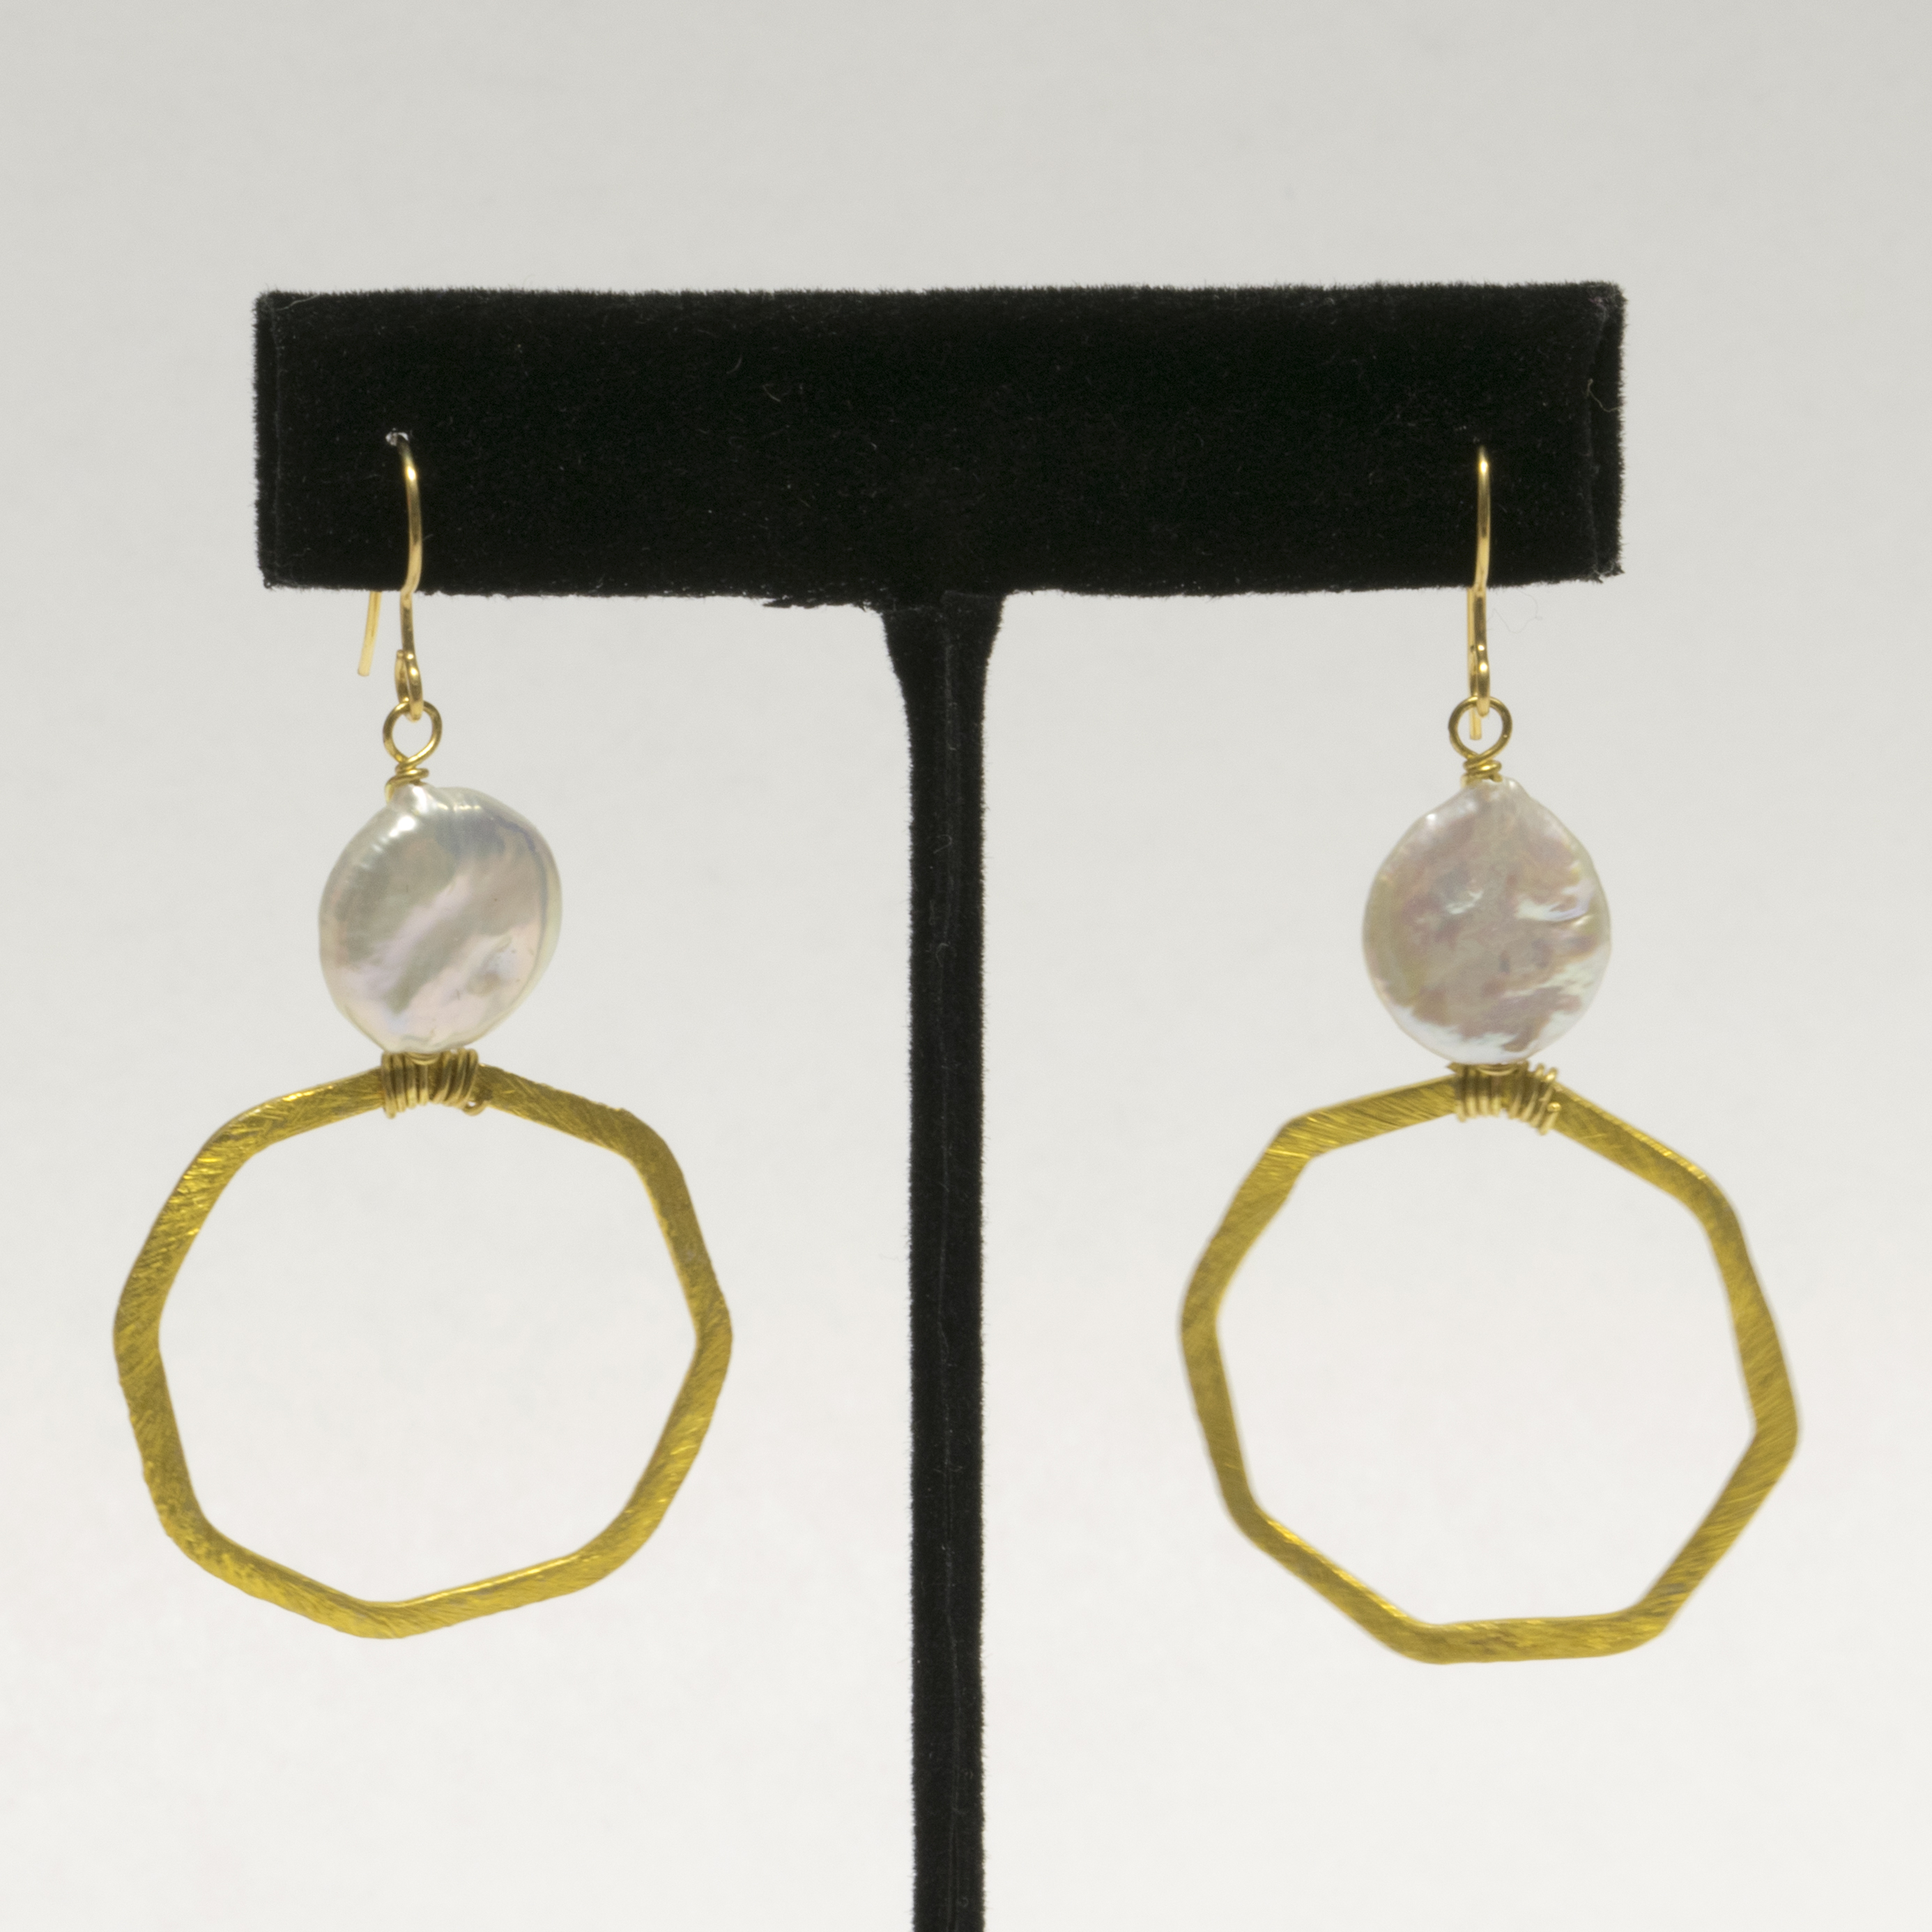 Hazen earrings